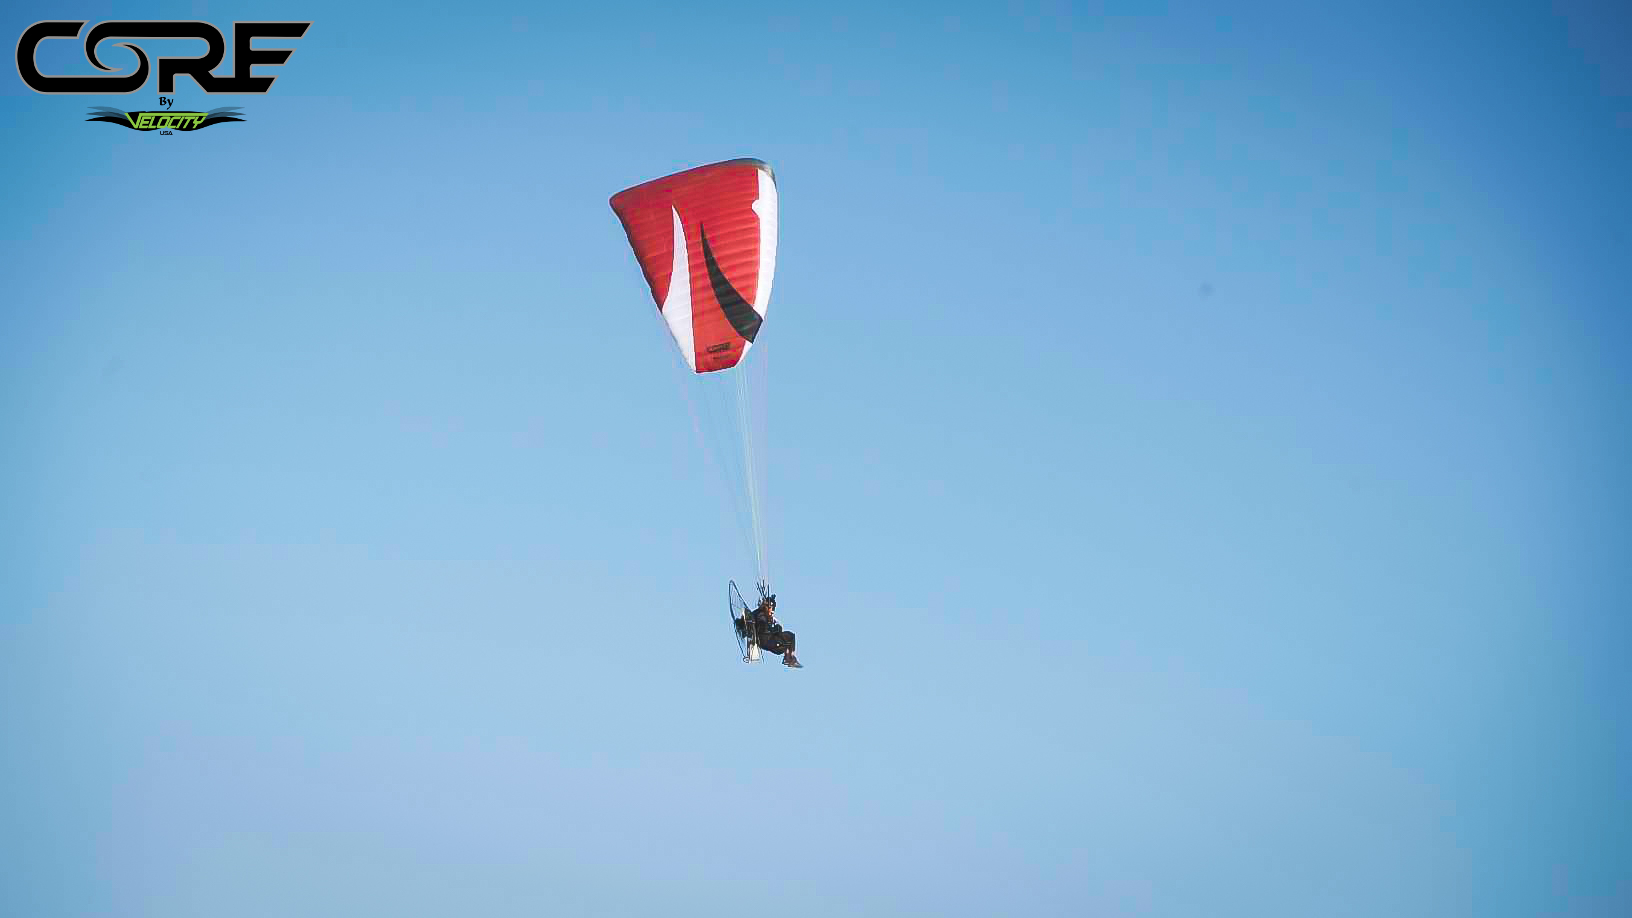 Velocity Core Paraglider – Florida Powered Paragliding